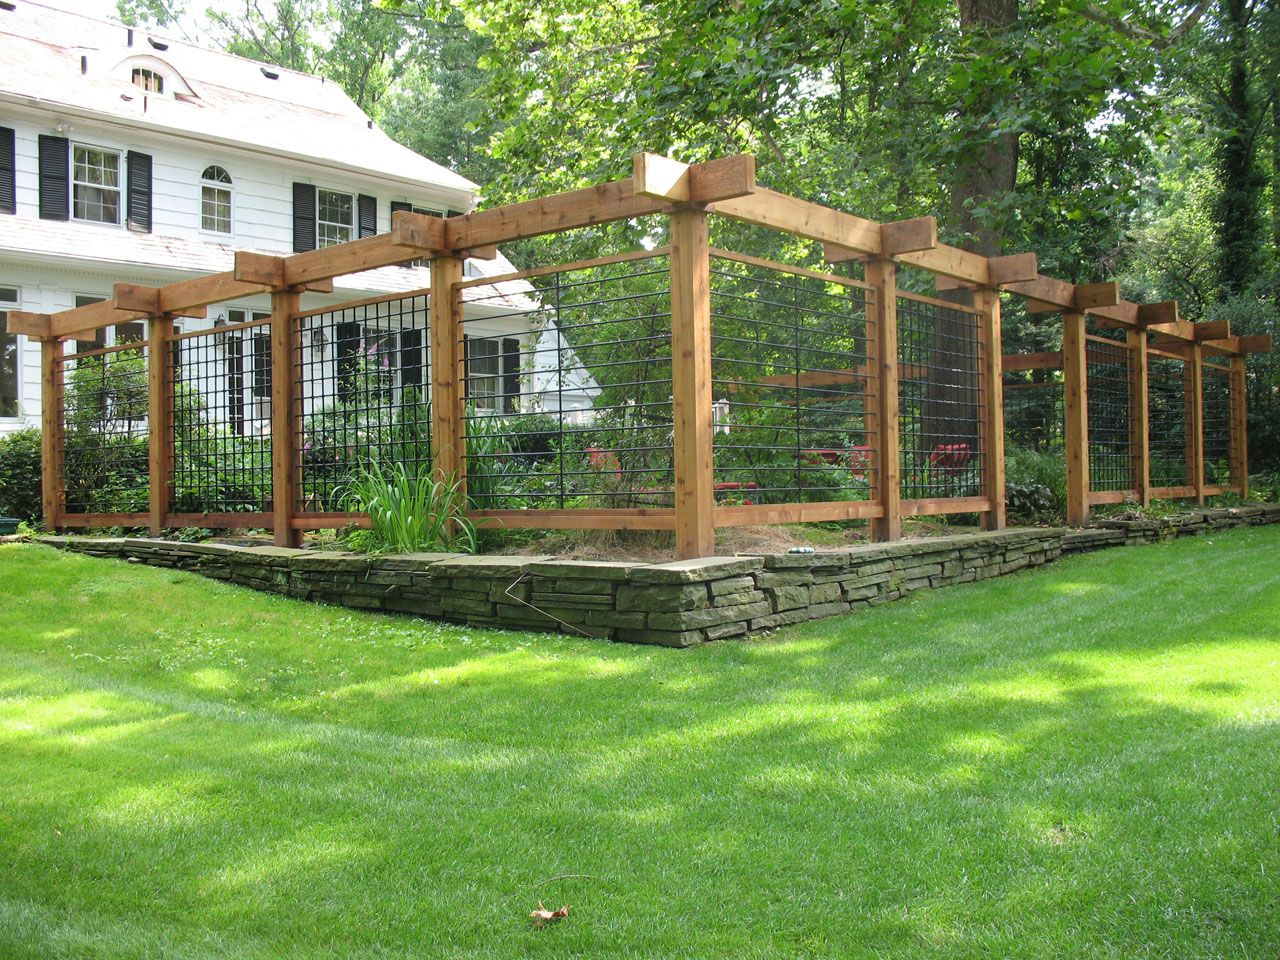 10 Fantastic Garden Fence Ideas To Keep Deer Out 25 ideas for decorating your garden fence diy garden diy 2020